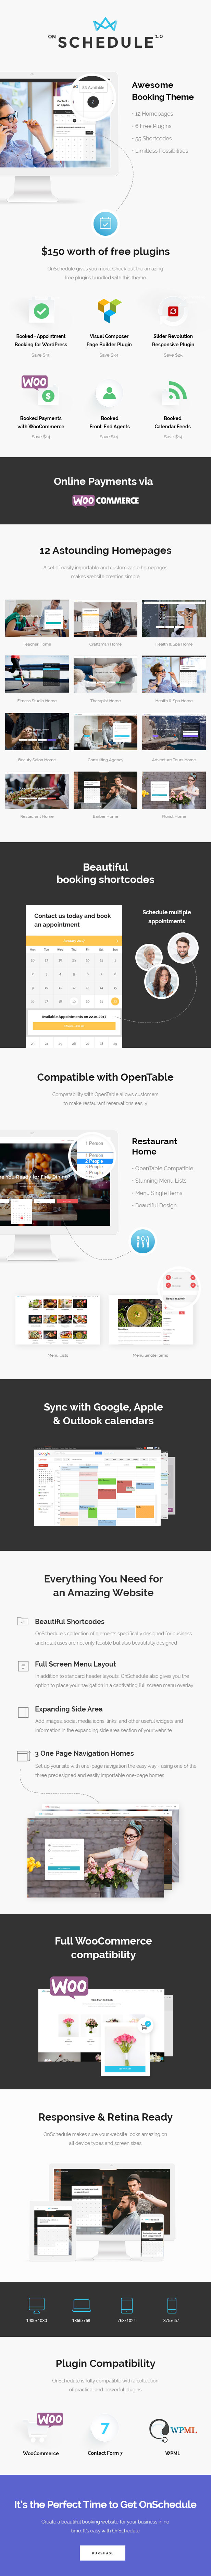 OnSchedule - Booking Theme for Business and Retail - 1